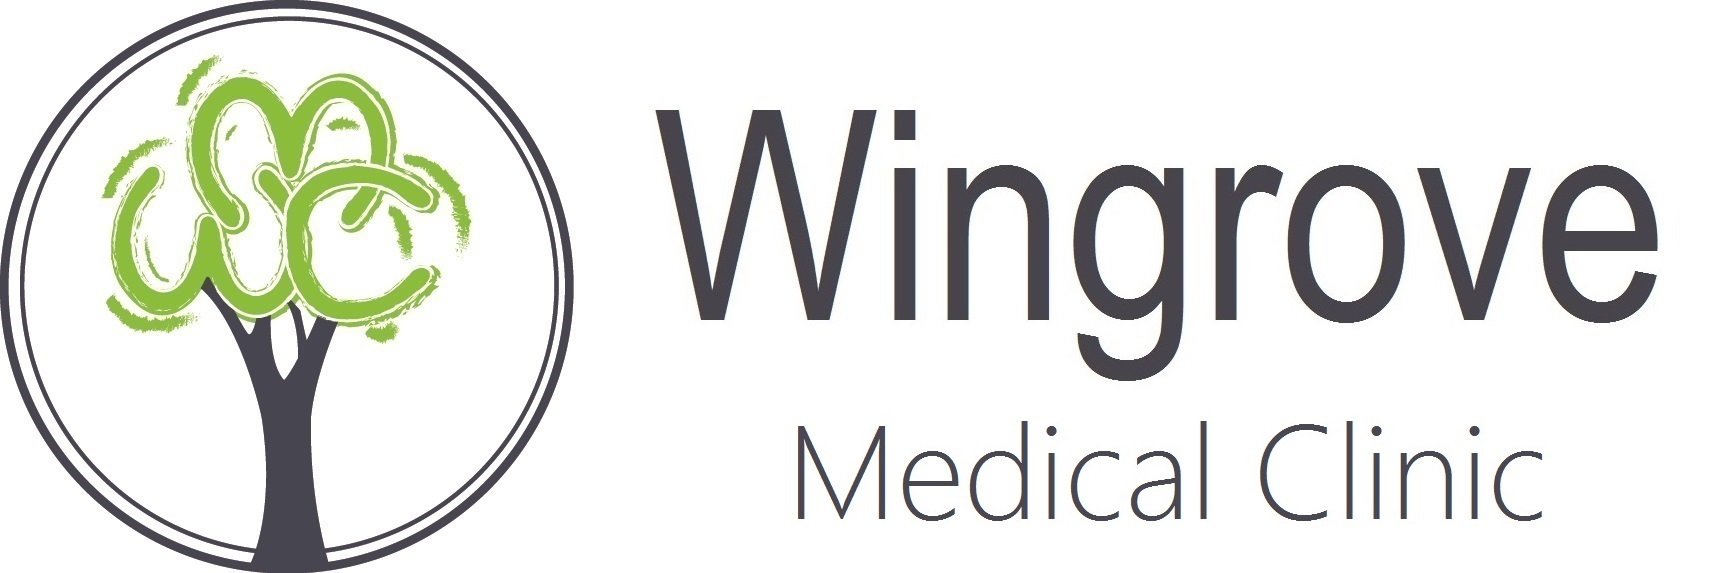 Wingrove Medical Clinic Fairfield Logo